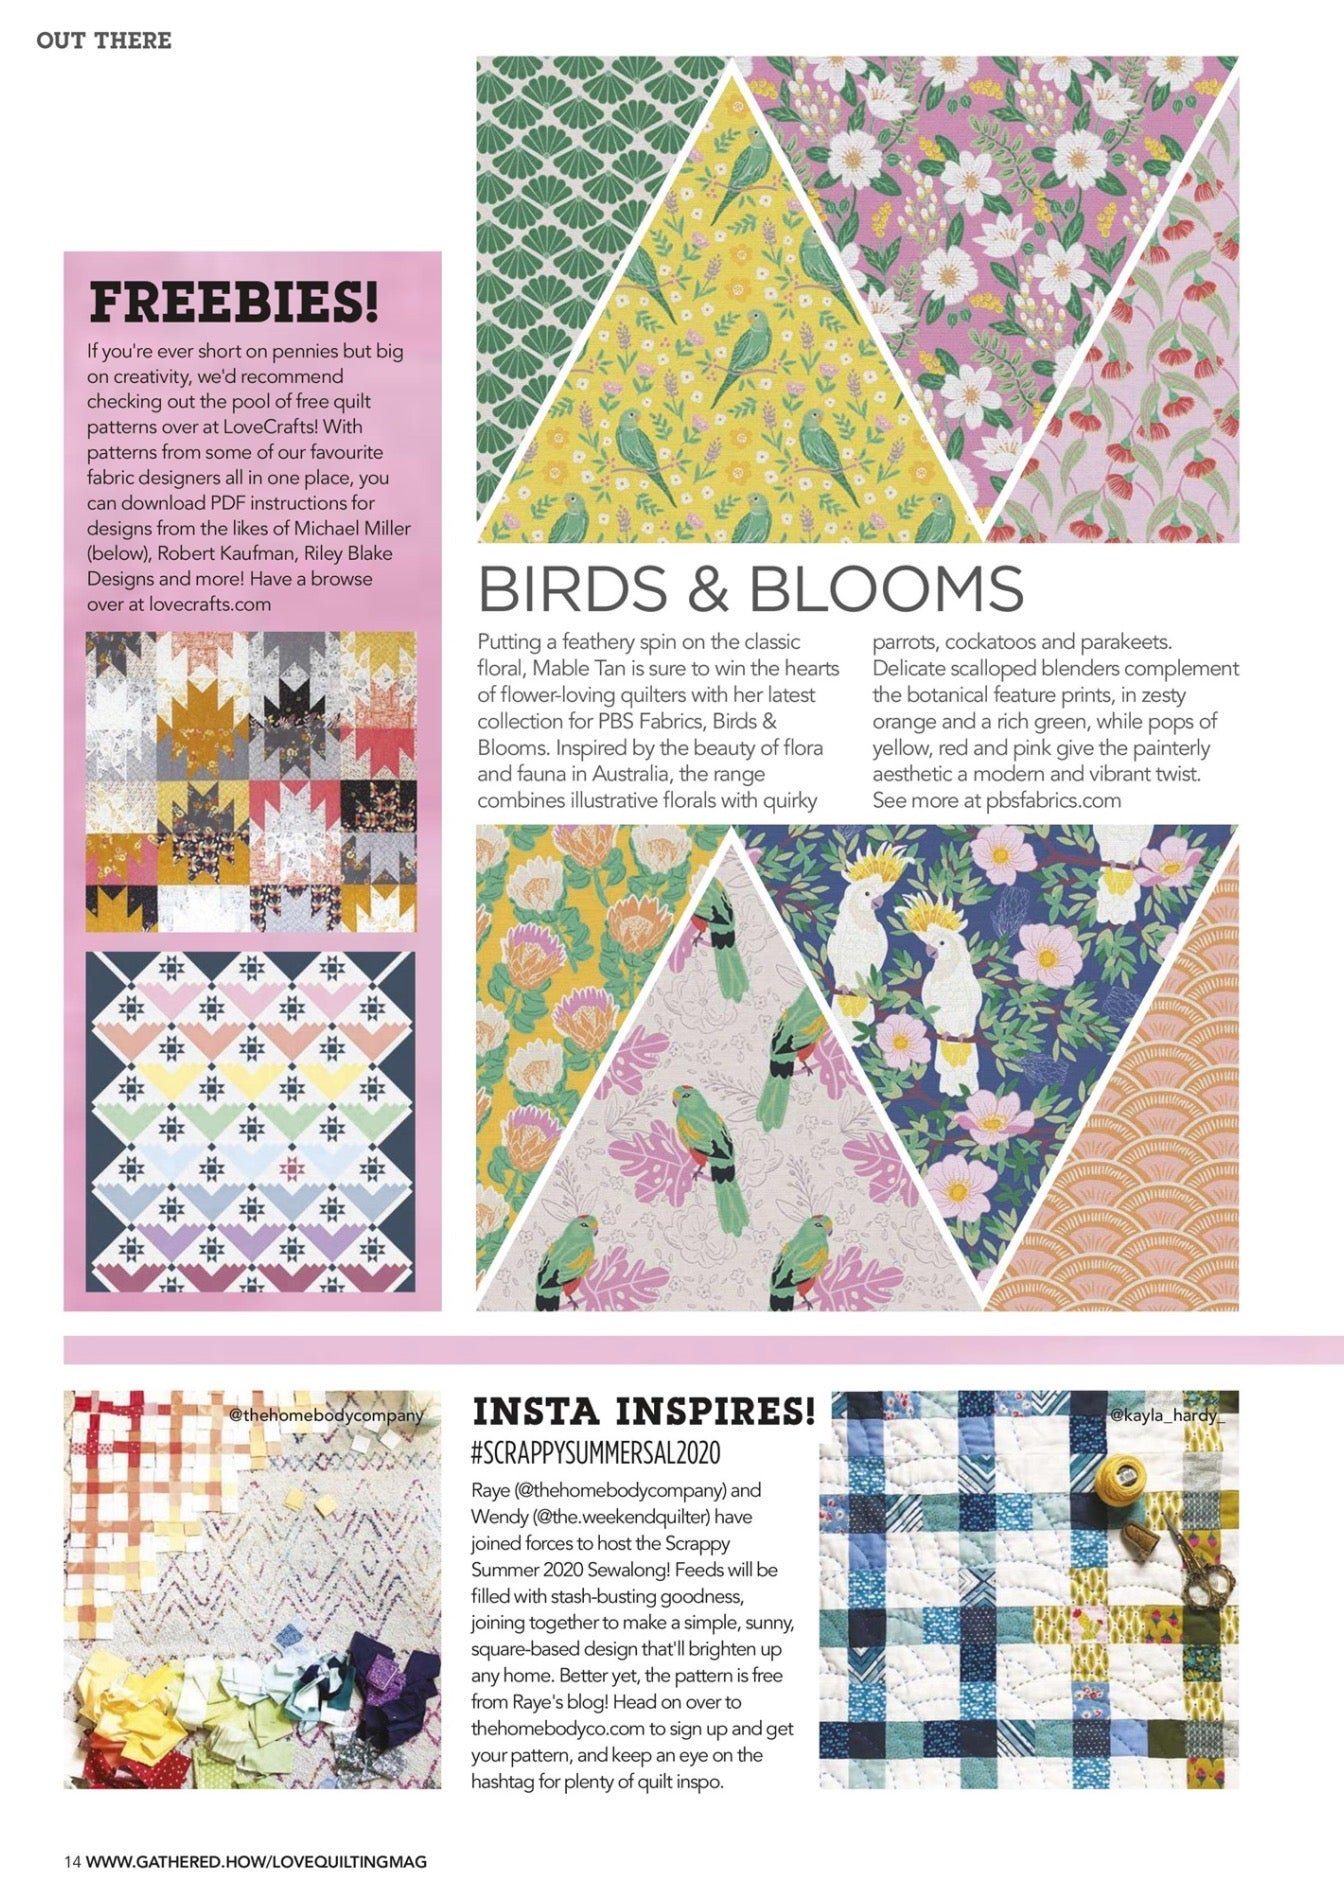 Scrappy Summer Sew Along 2020, Love Quilting and Patchwork Magazine issue #89 the homebody company the weekend quilter